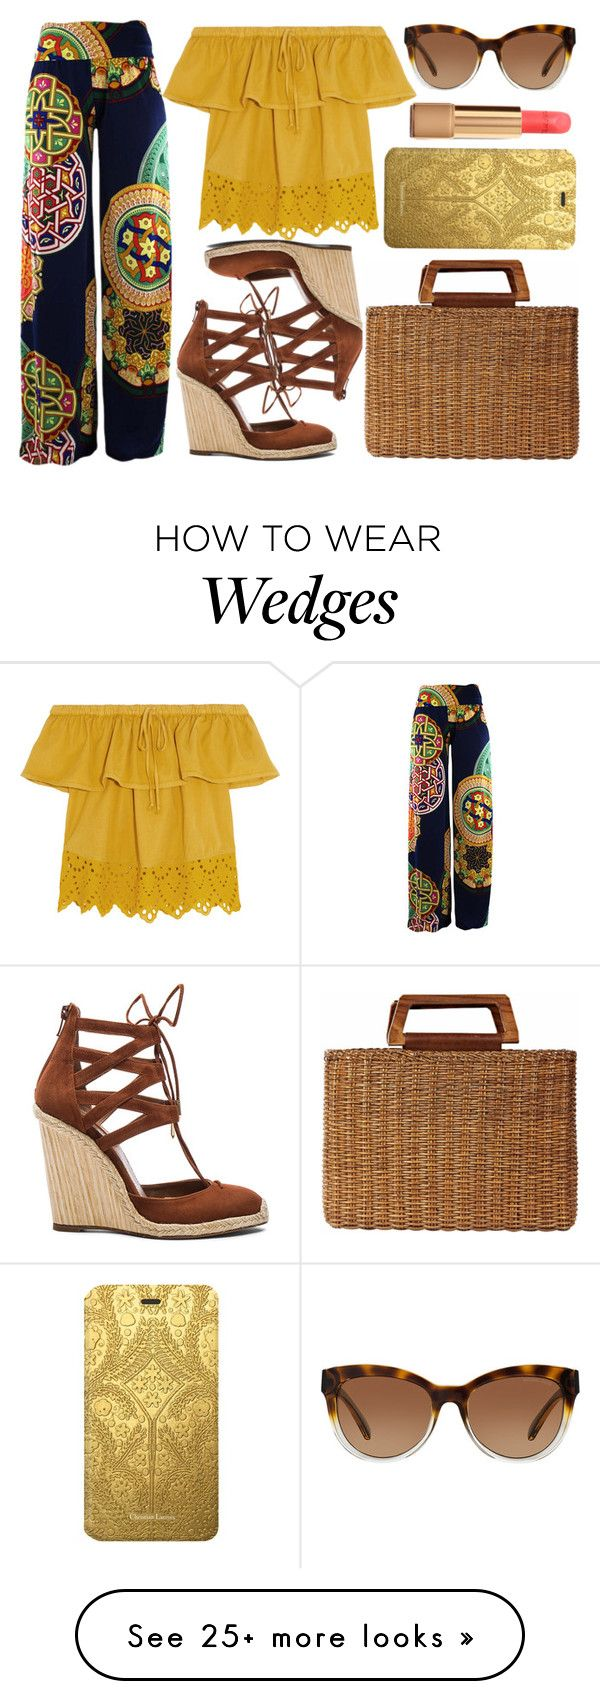 """street style"" by sisaez on Polyvore featuring Madewell, Aquazzura, Michael Kors, Chanel, Christian Lacroix and Salvatore Ferragamo"